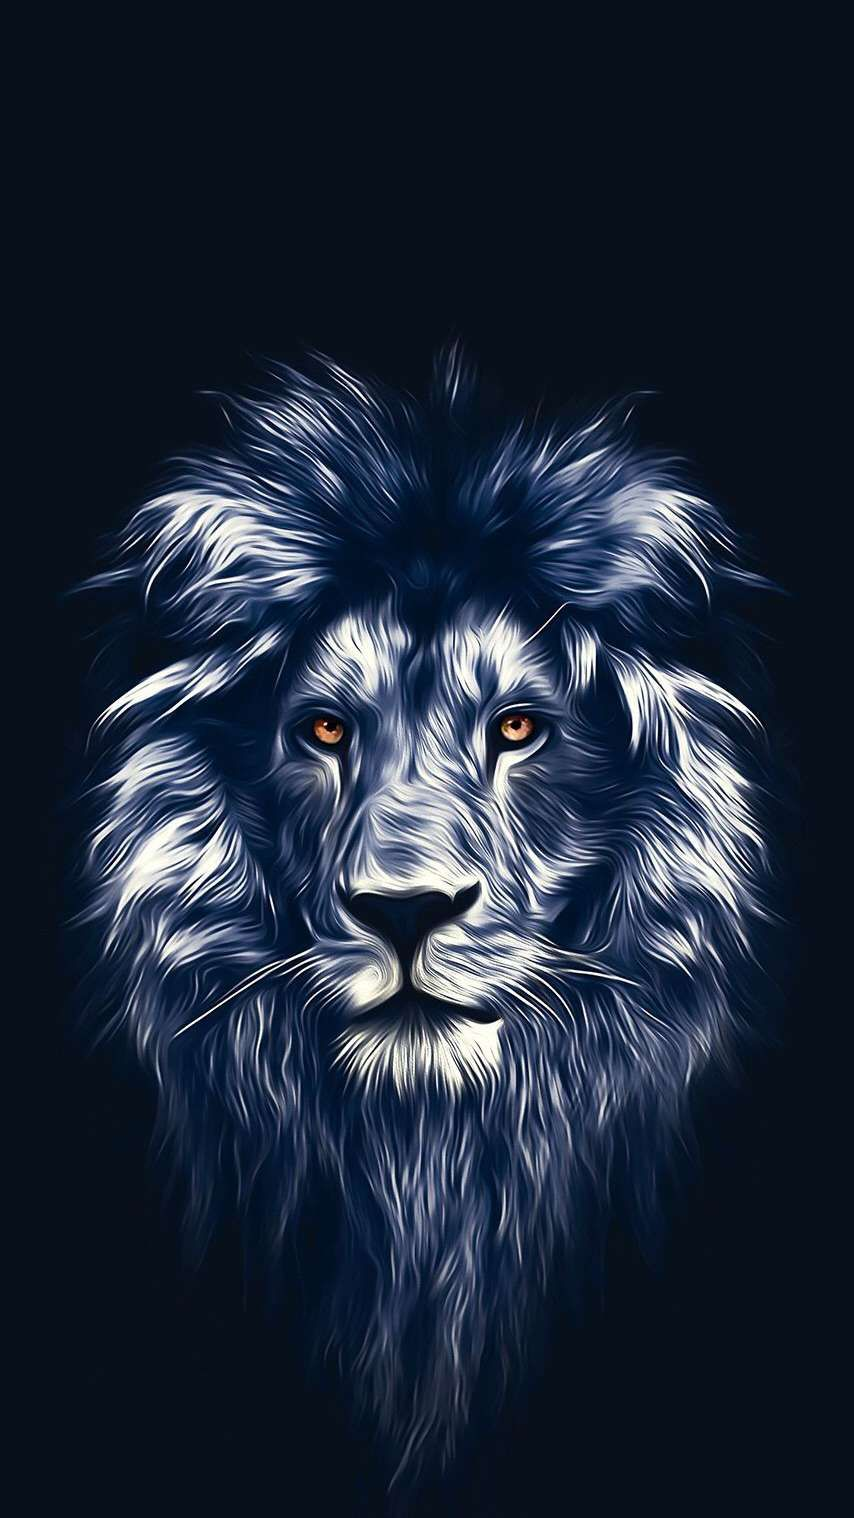 Lion Face Art Iphone Wallpaper Lion Pictures Lion Wallpaper Lion Painting